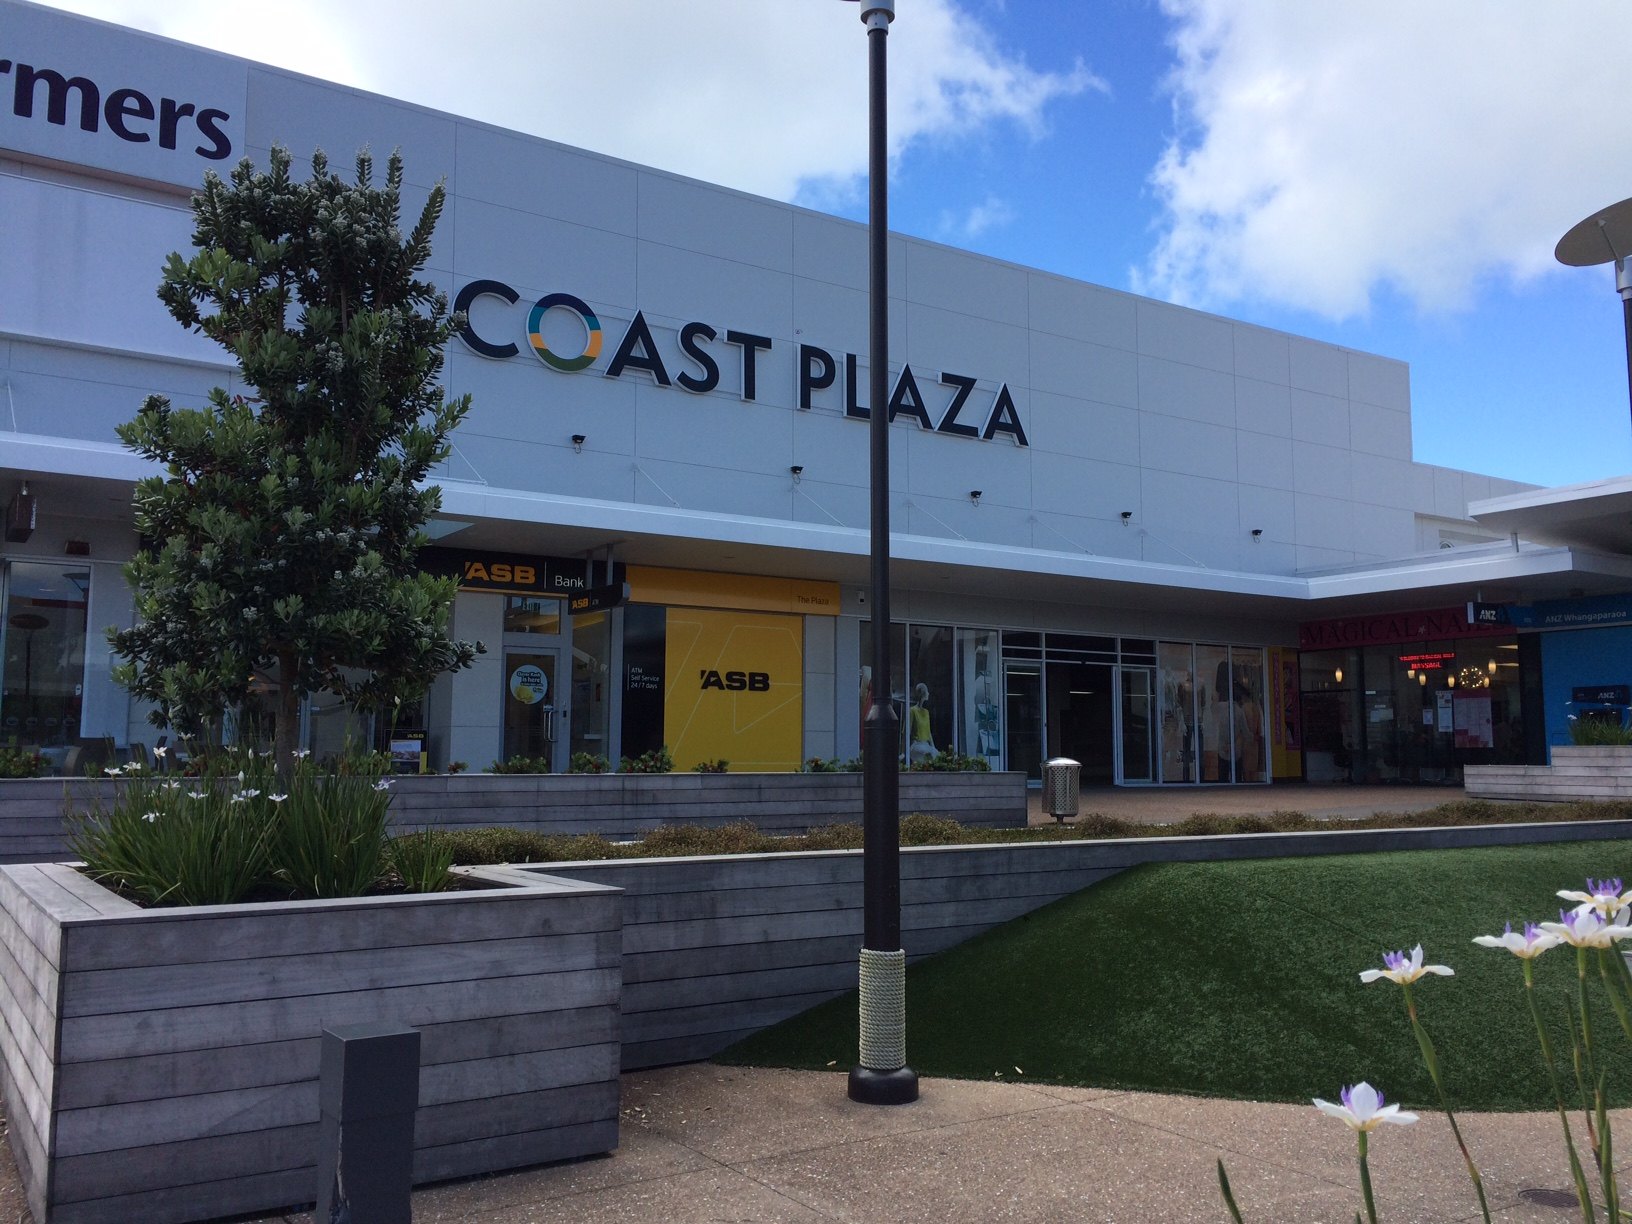 Club Physical Coast Plaza exterior